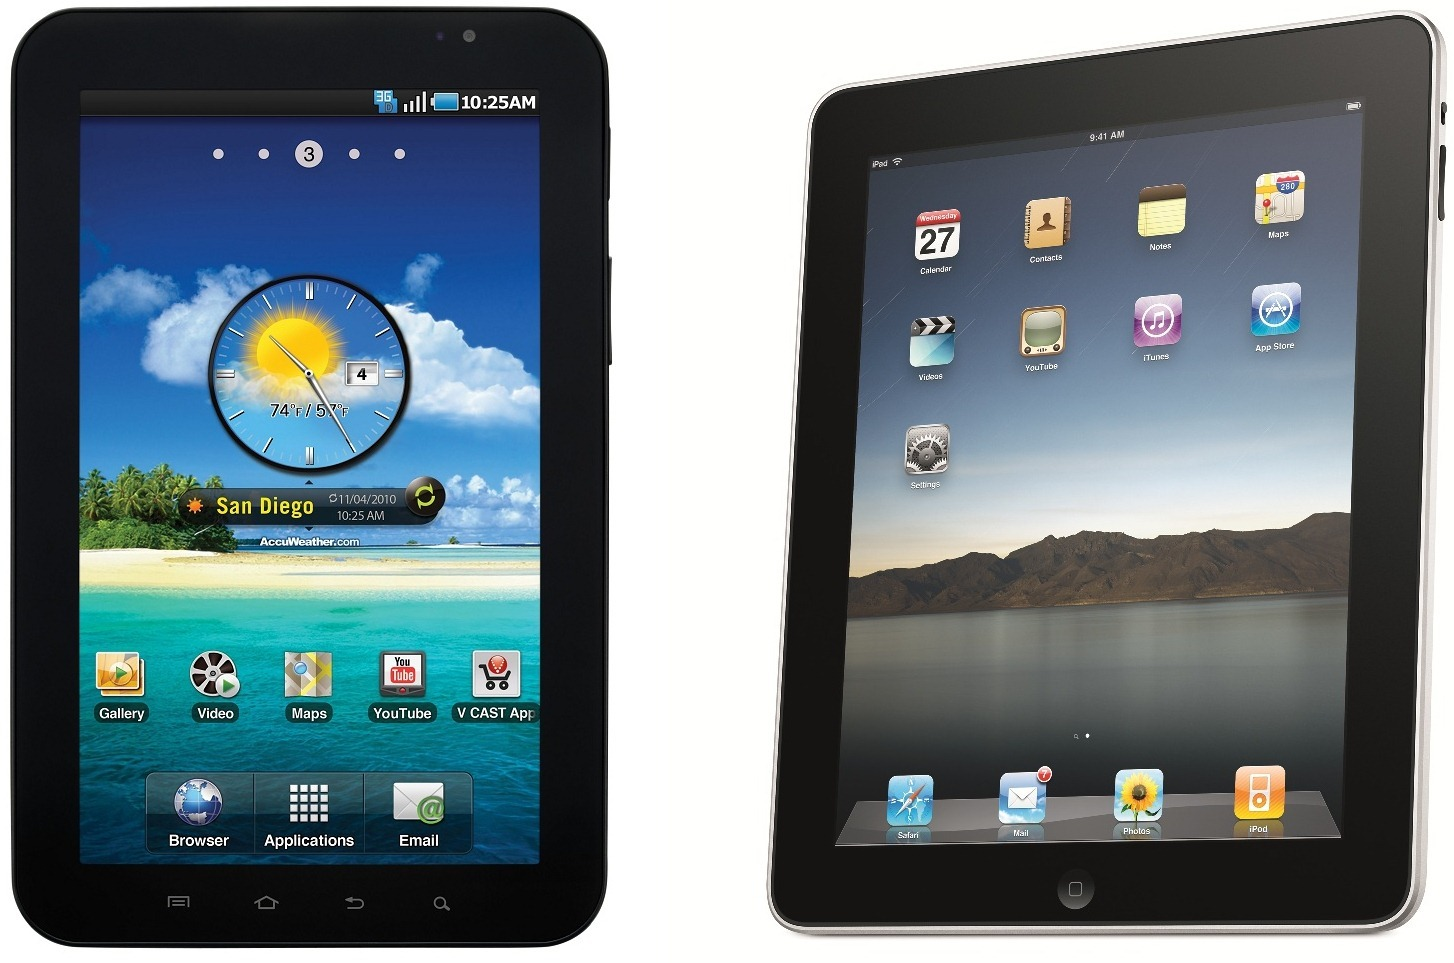 Samsung Galaxy Tab 10.1 equals iPad 2 in performance